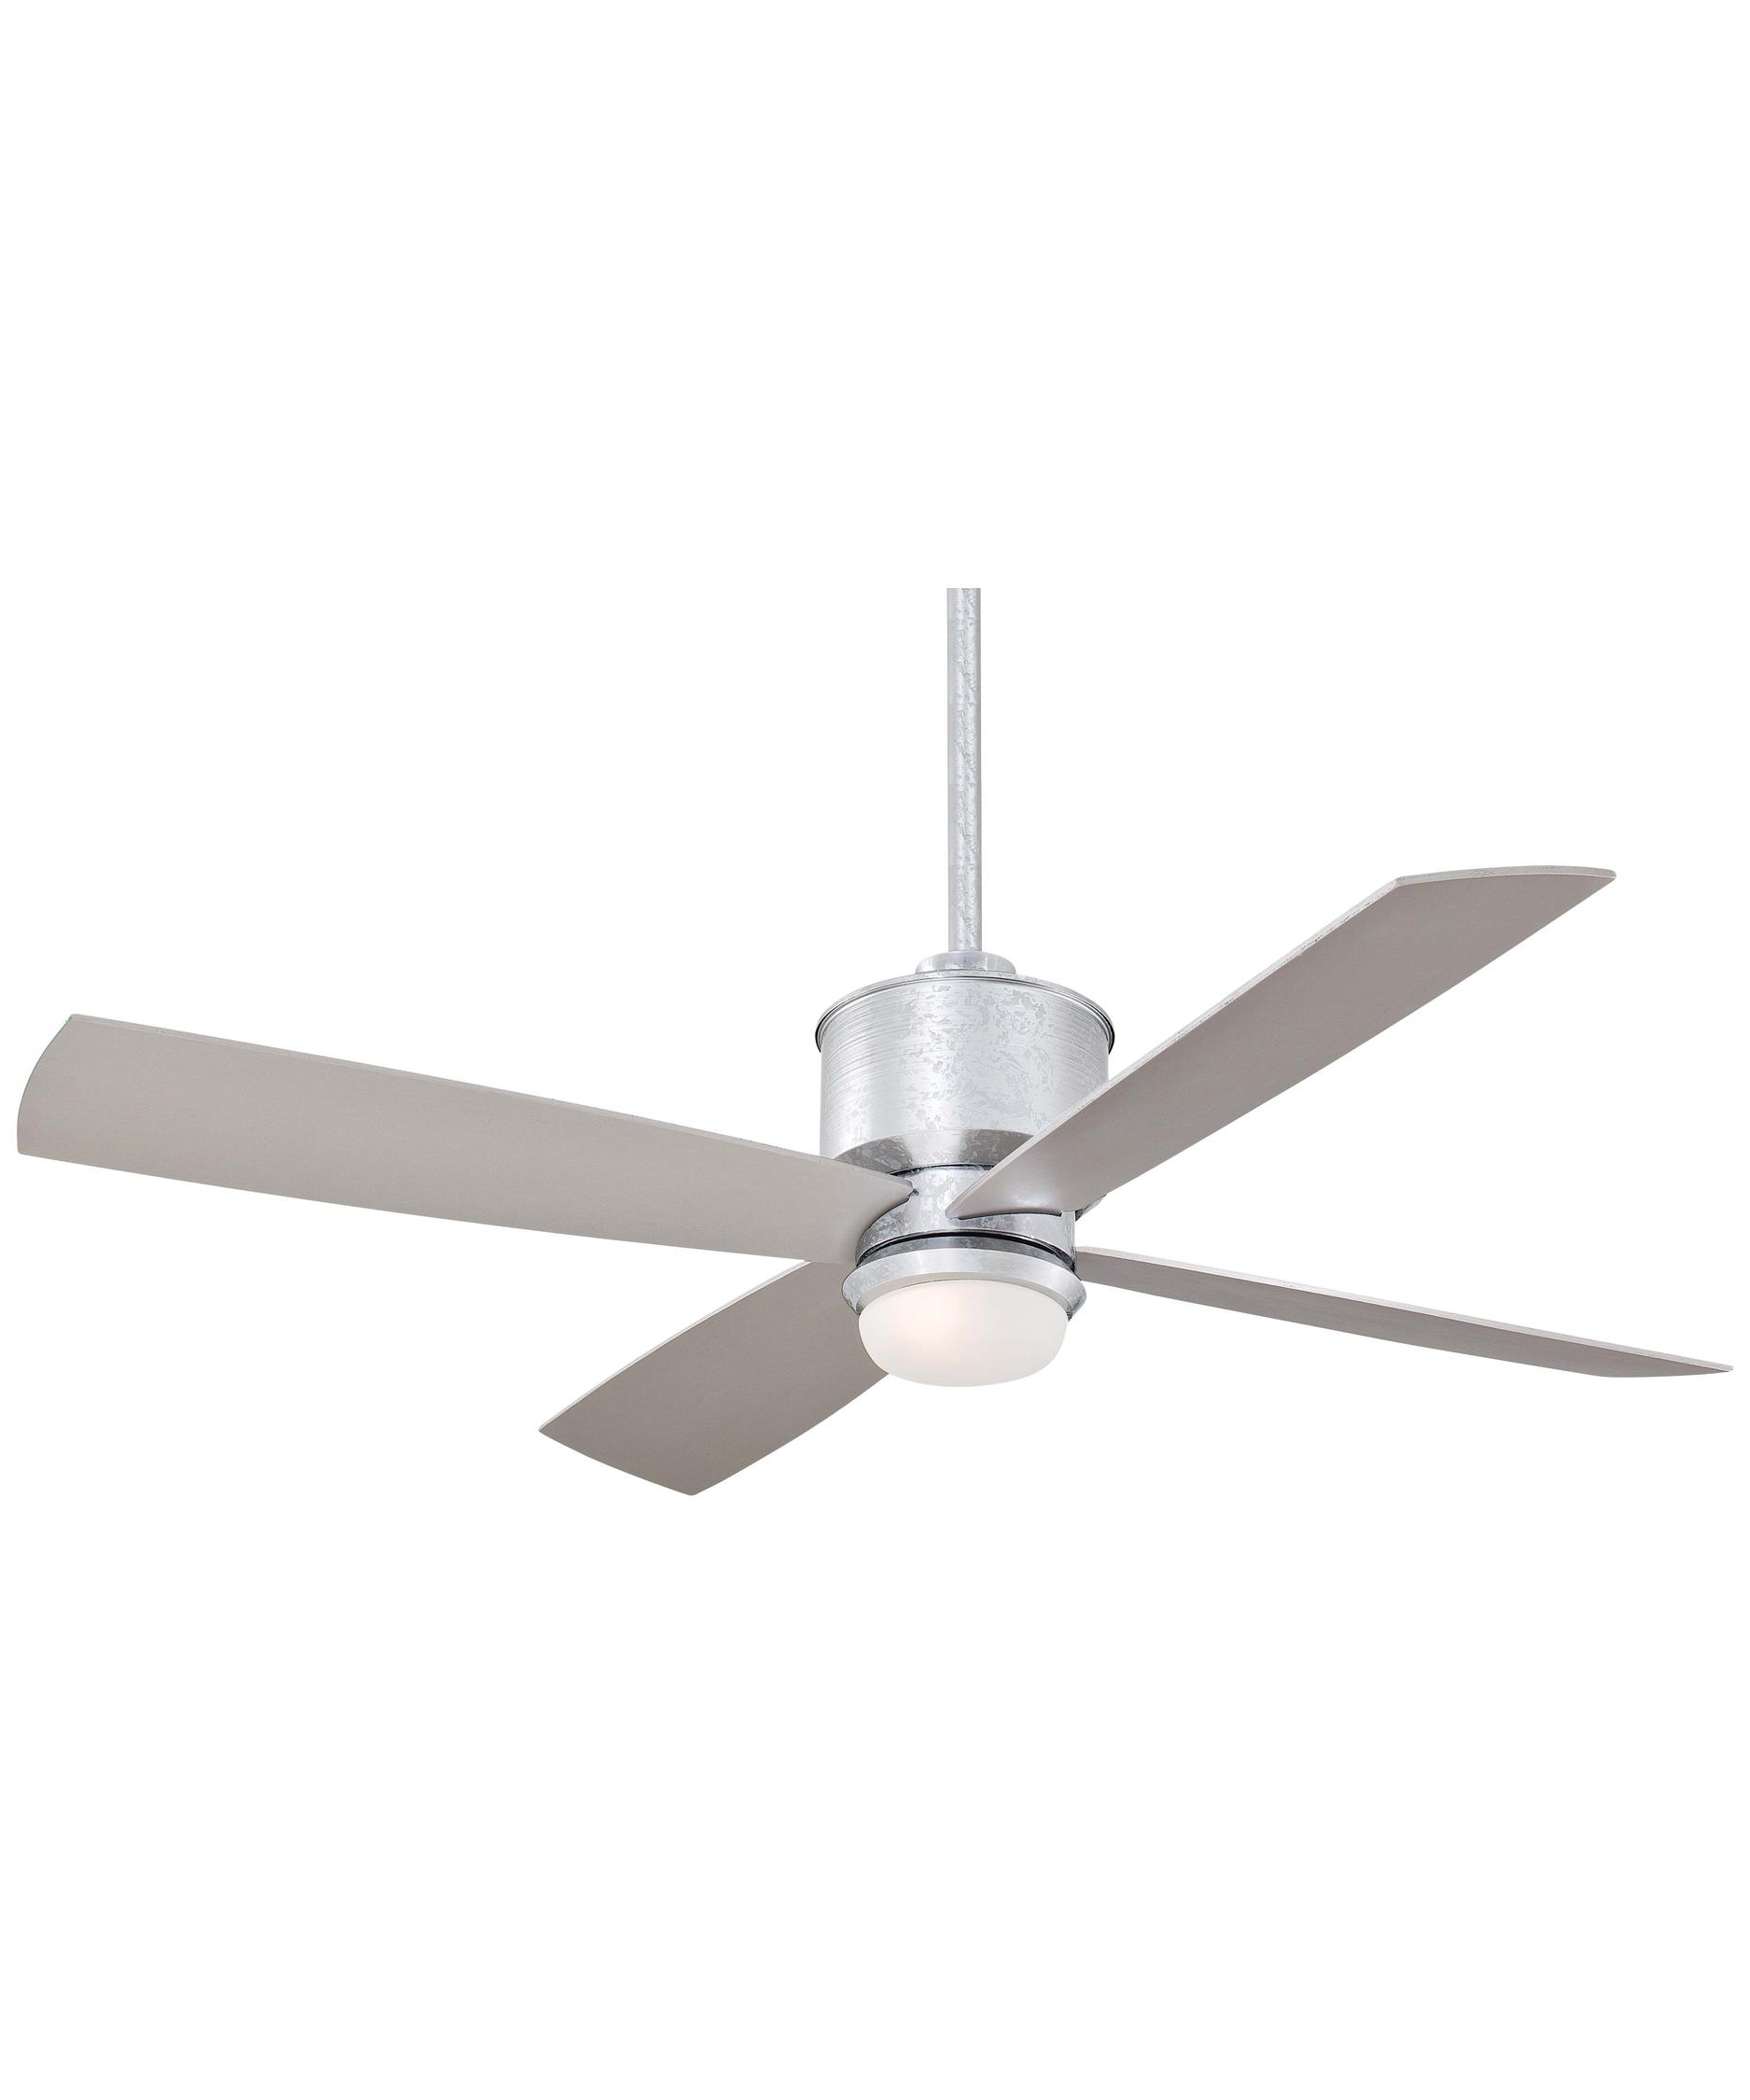 52 Inch Outdoor Ceiling Fans With Lights Within Most Recently Released Minka Aire F734 Strata 52 Inch 4 Blade Ceiling Fan (View 9 of 20)